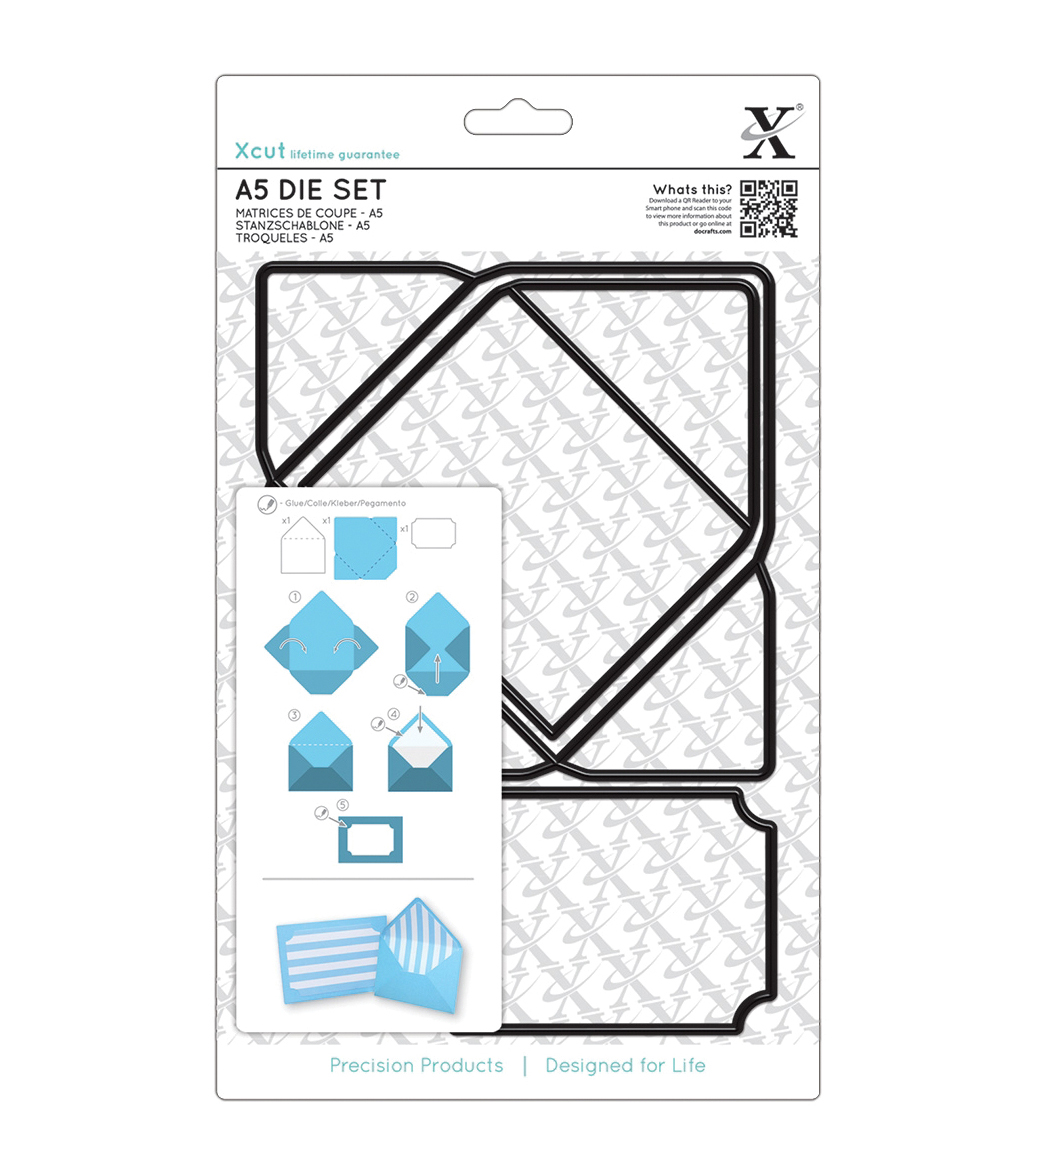 Docrafts Xcut A5 A7 Envelope Die Set